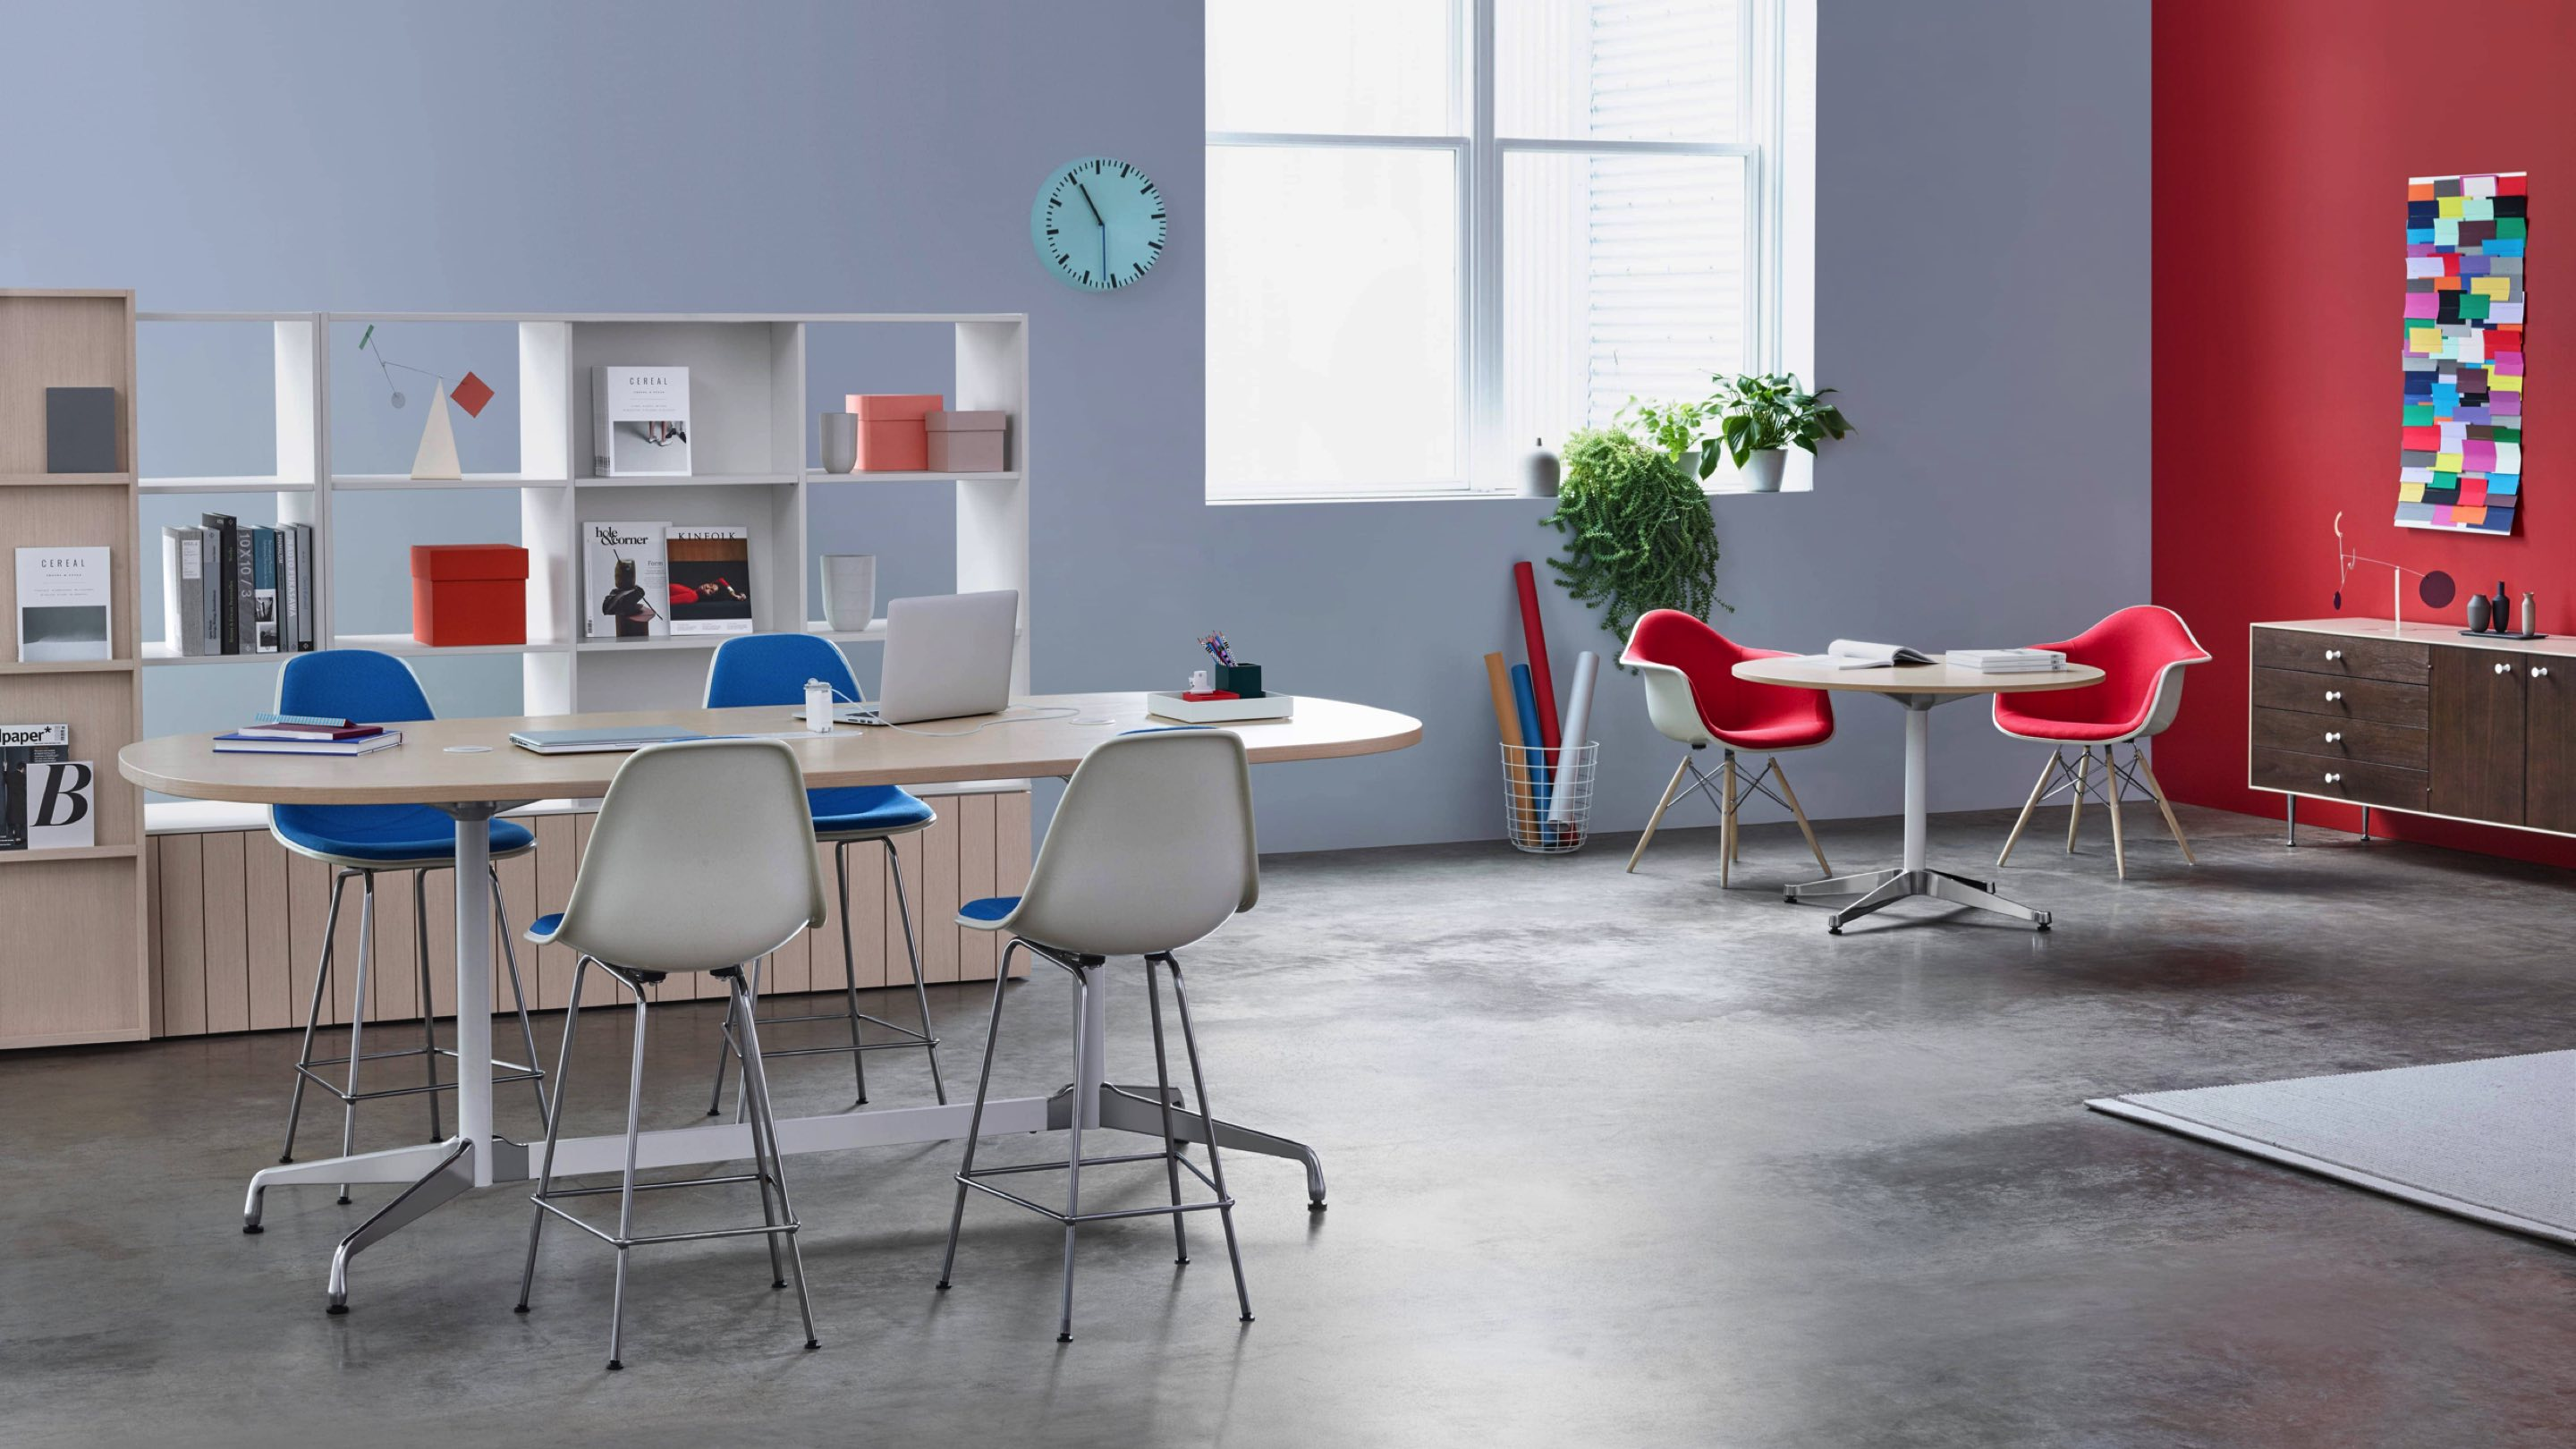 This Workshop setting is built around a group of four Eames Stools around a standing-height Eames Table, with a pair of upholstered Eames Molded Fiberglass Armchairs at a small Eames Table below a nearby window.